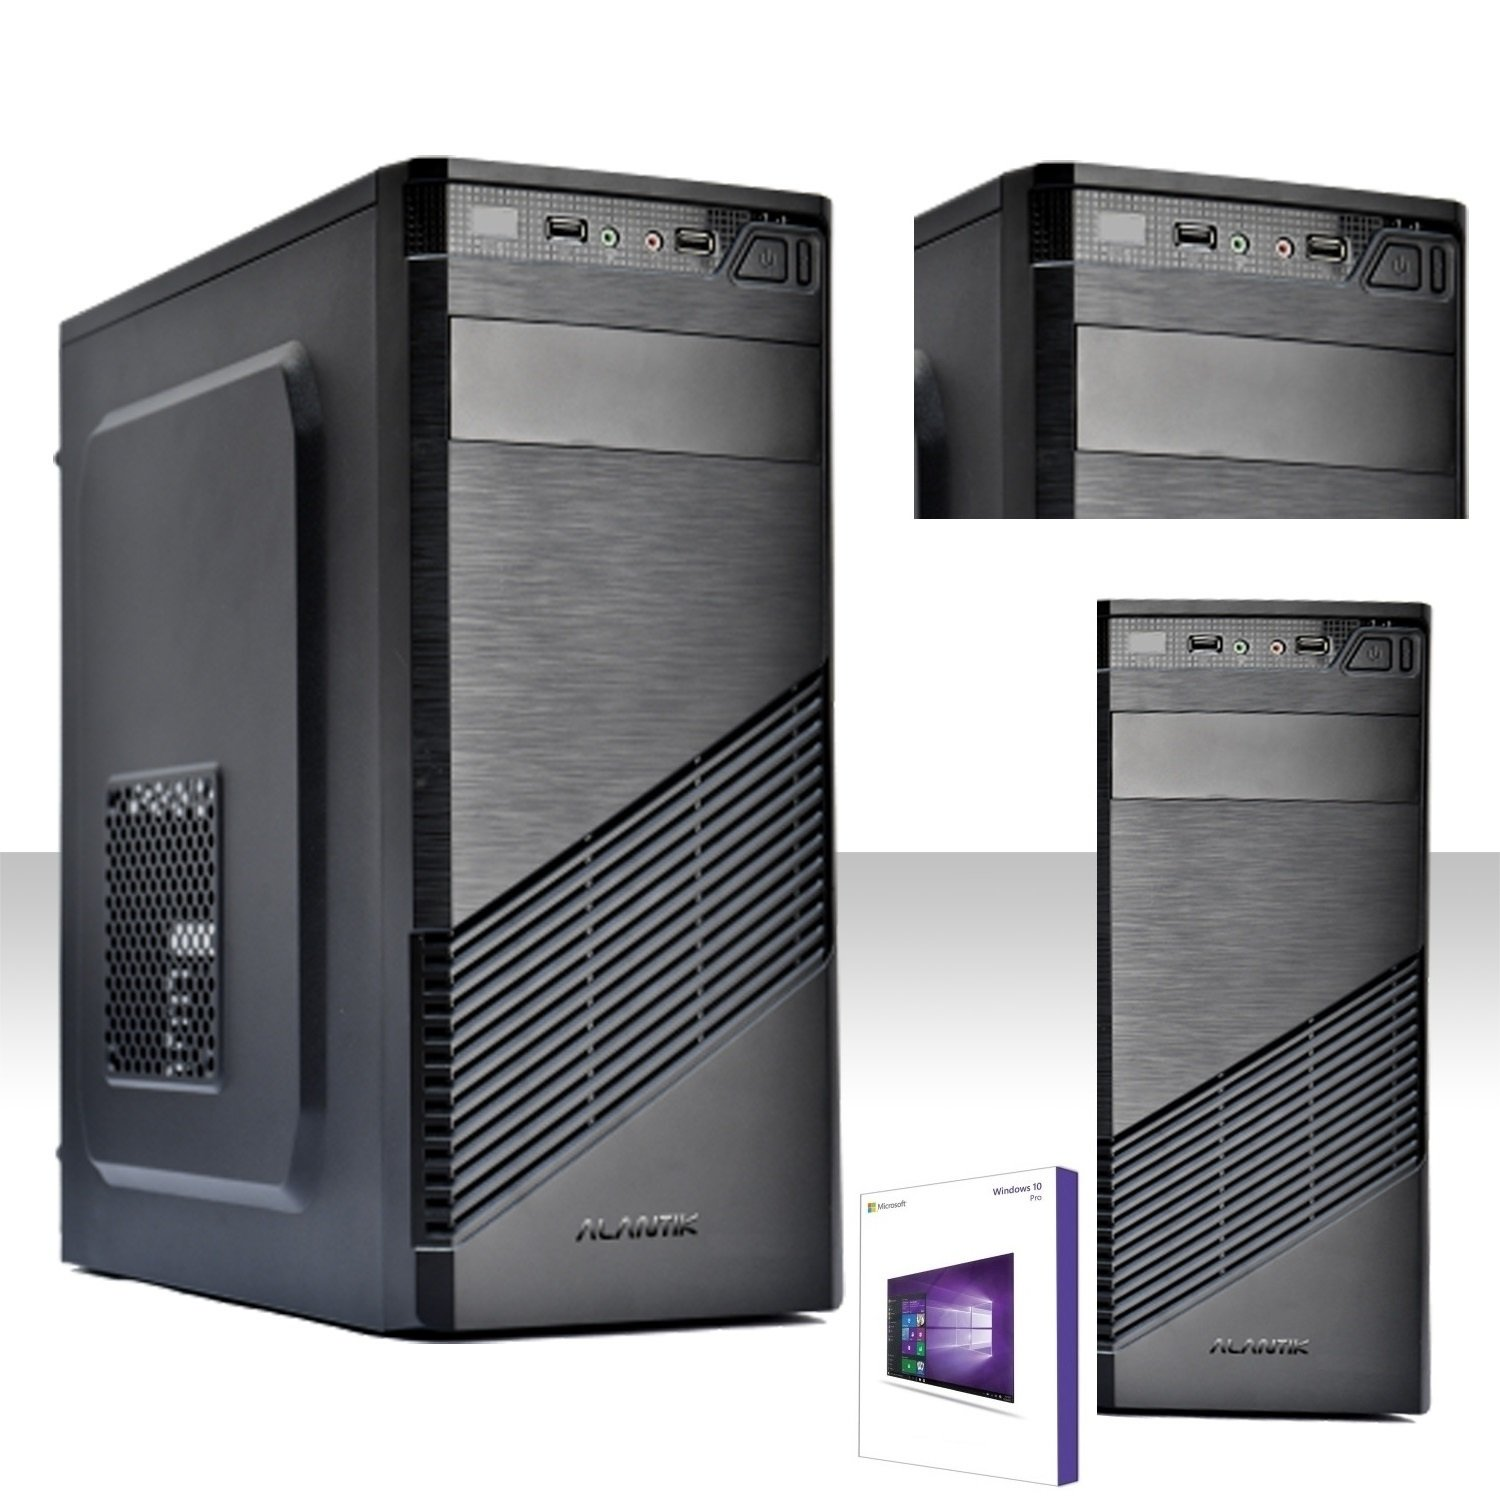 PC Desktop Intel Quad-core Win 10 Pro HD 1TB/RAM 8 GB DDR3